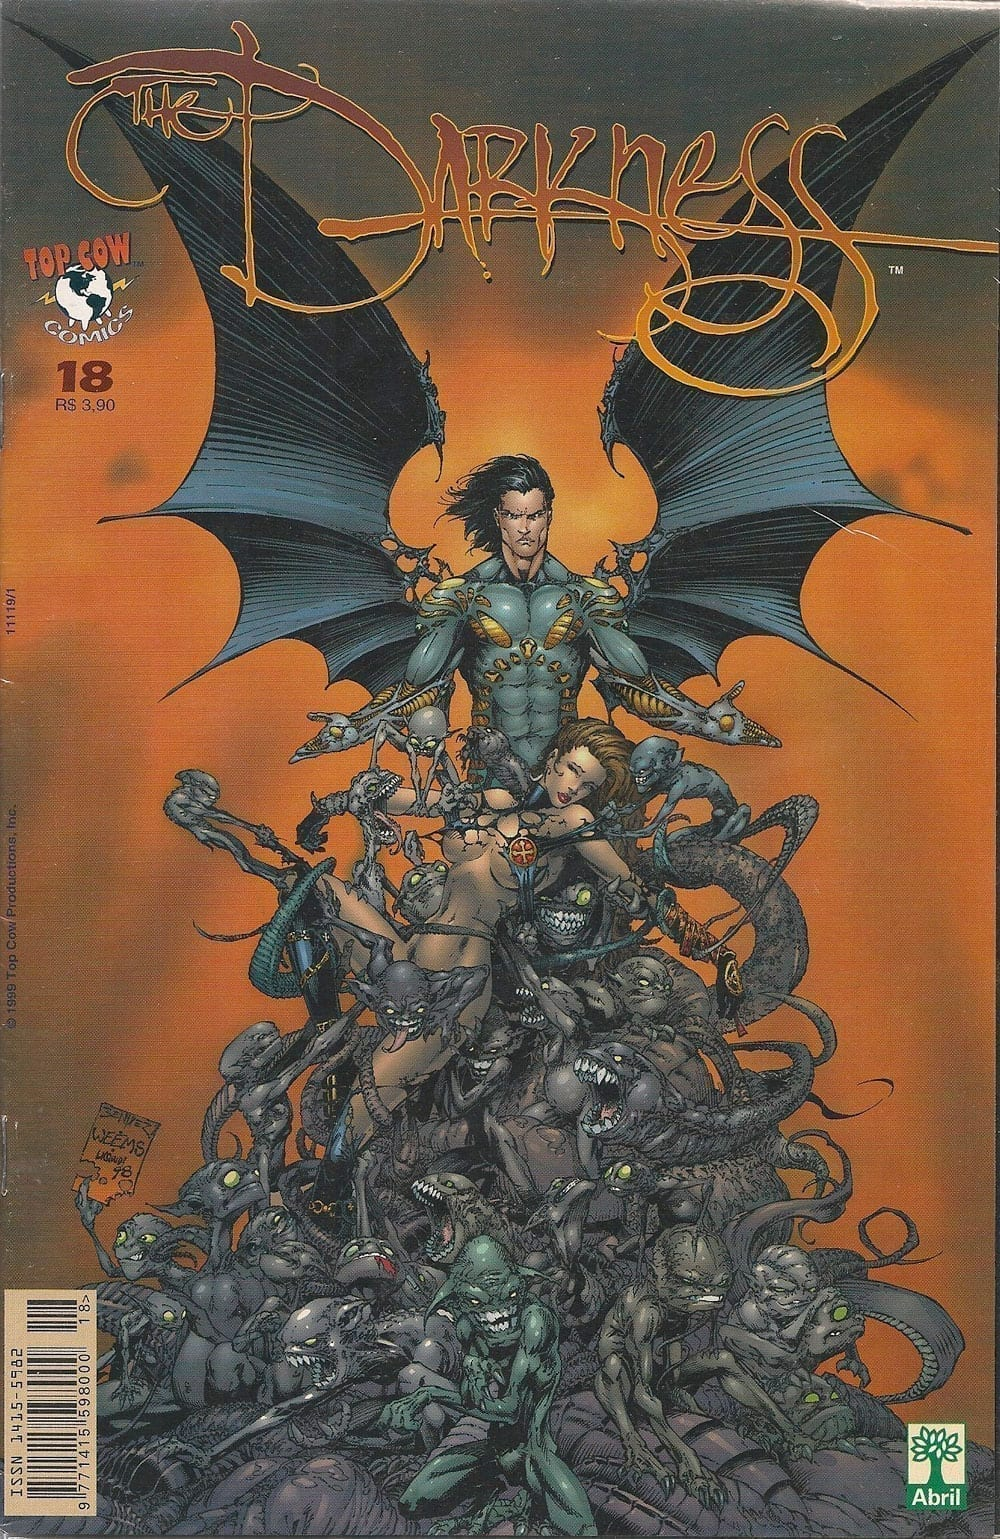 <span>The Darkness & Witchblade 18</span>